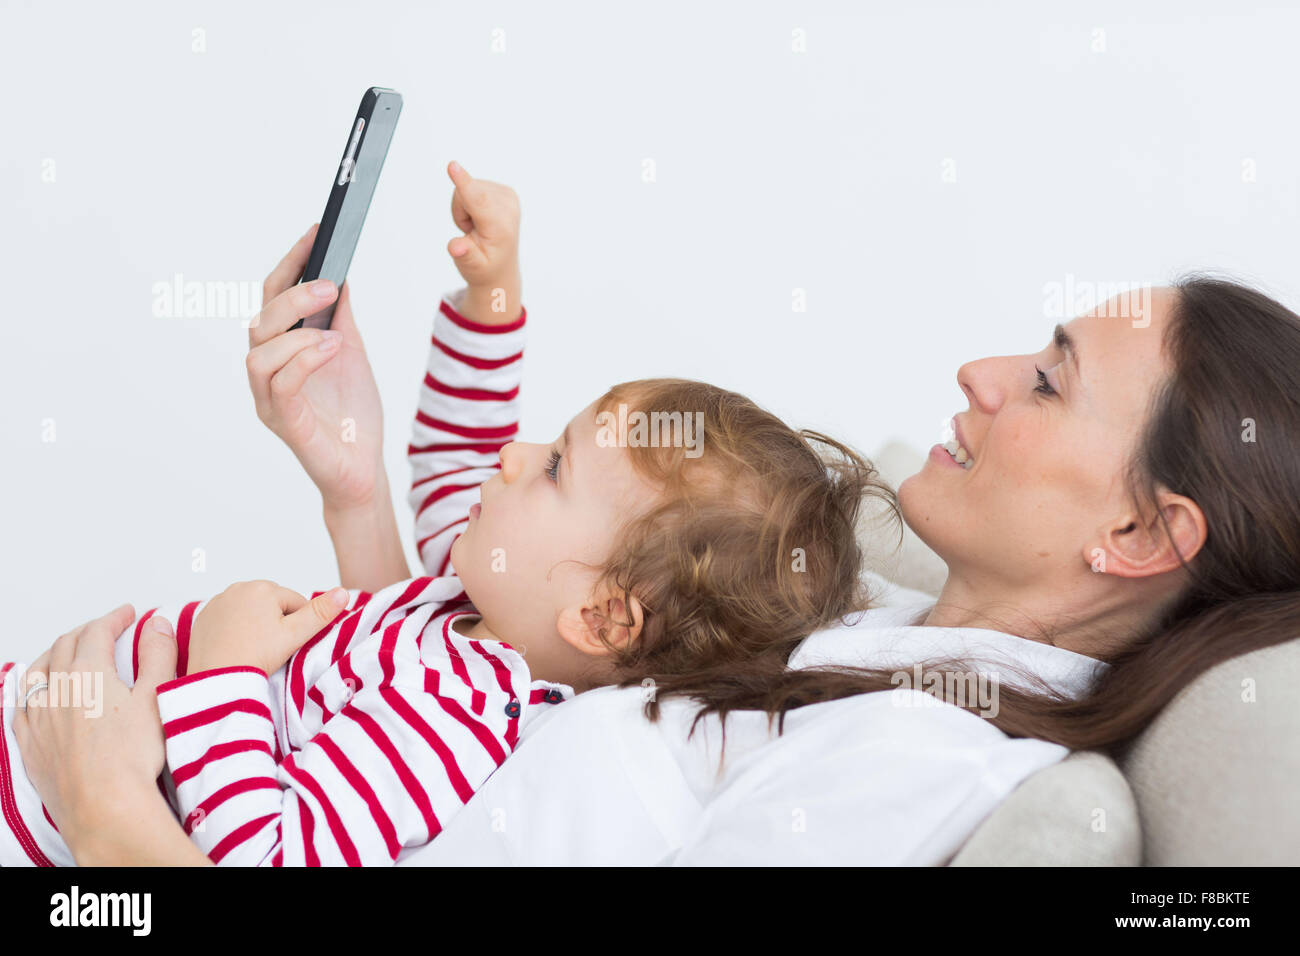 2 year-old boy with cell phone. - Stock Image